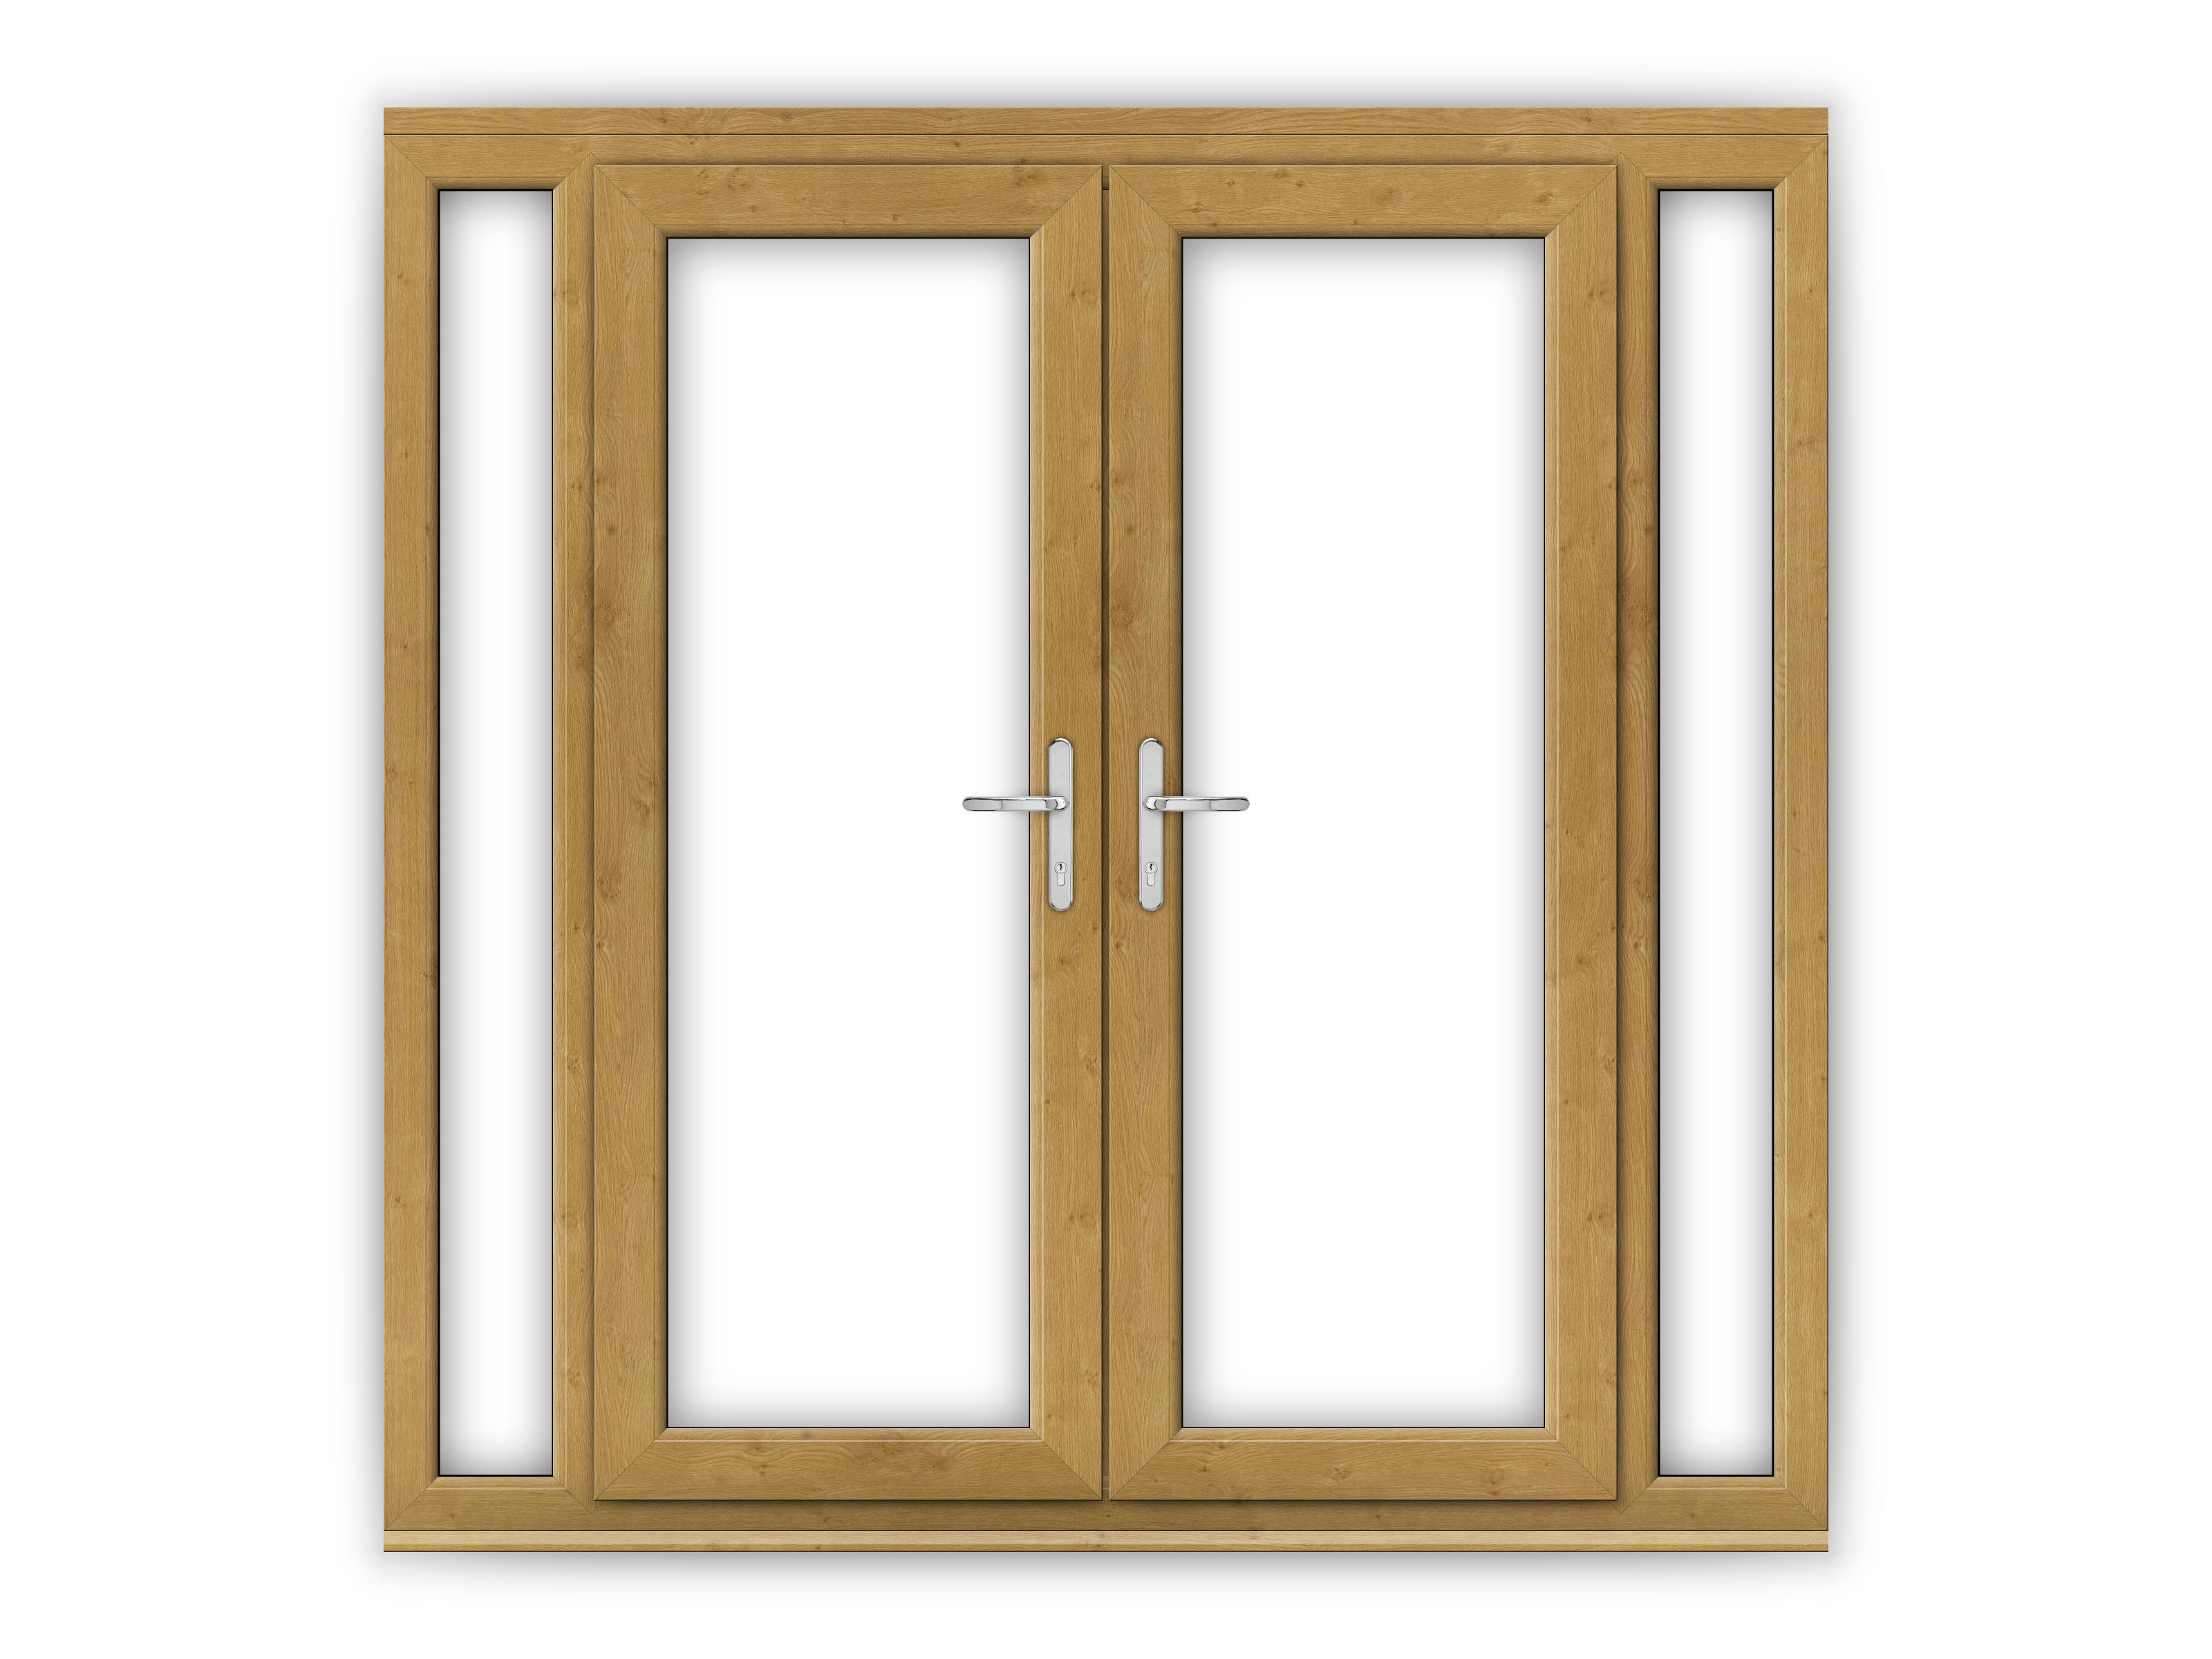 5ft irish oak upvc french doors with narrow side panels for Narrow french patio doors